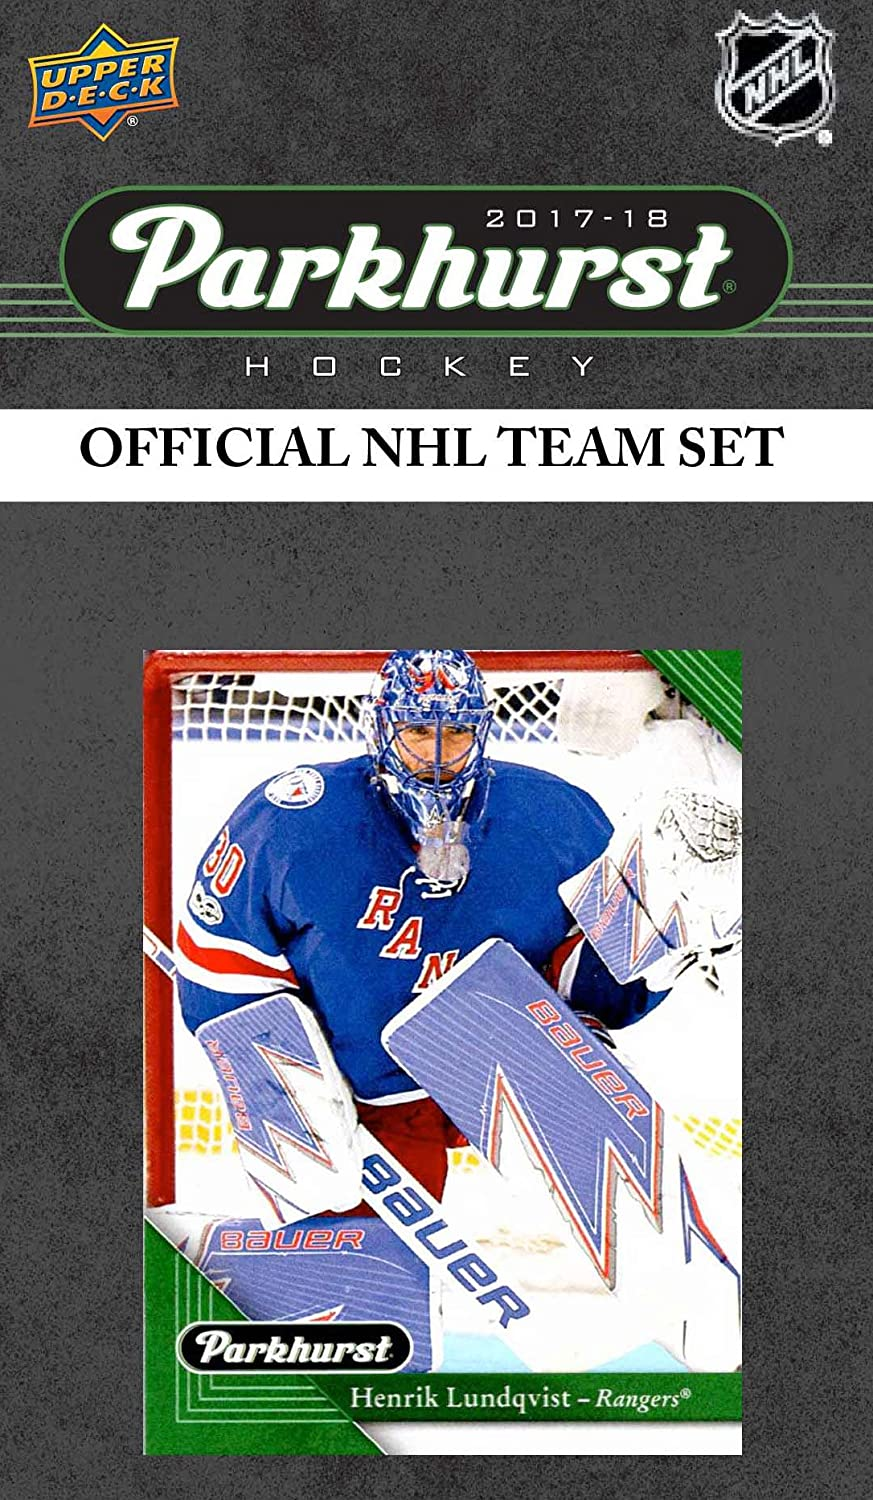 Upper Deck New York Rangers 2018 2019 PARKHURST Series Factory Sealed Team Set Including Henrik Lundqvist Marc Staal and Mats Zuccarello Plus 7 Others